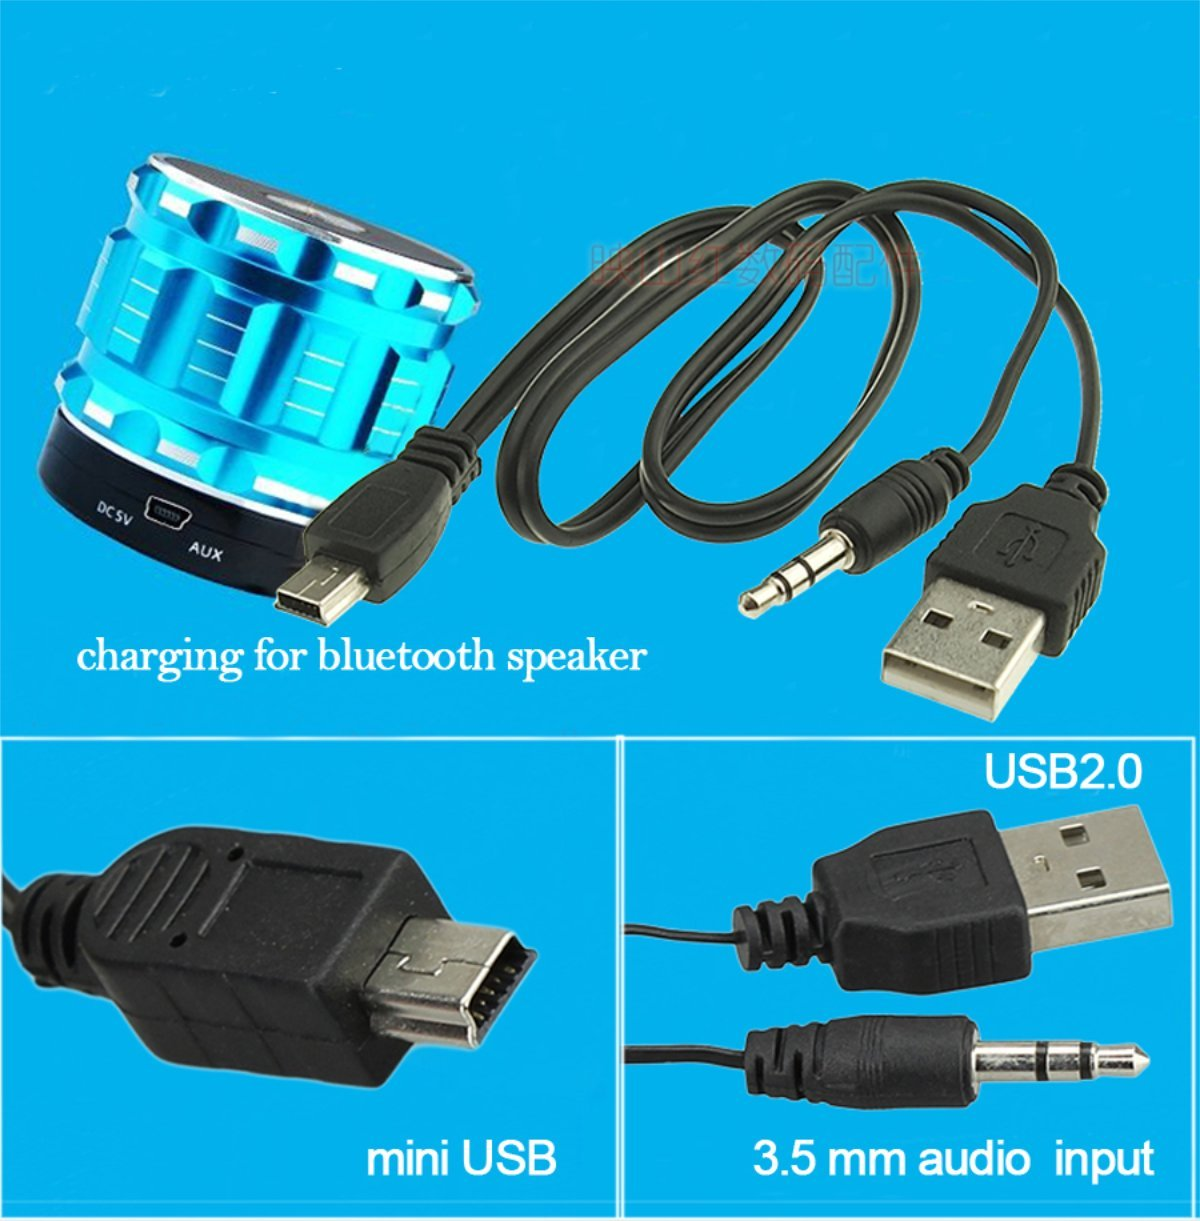 Amazon.com: 1x Micro 5pin to 3.5mm Jack USB Audio Cable for Samsung ...